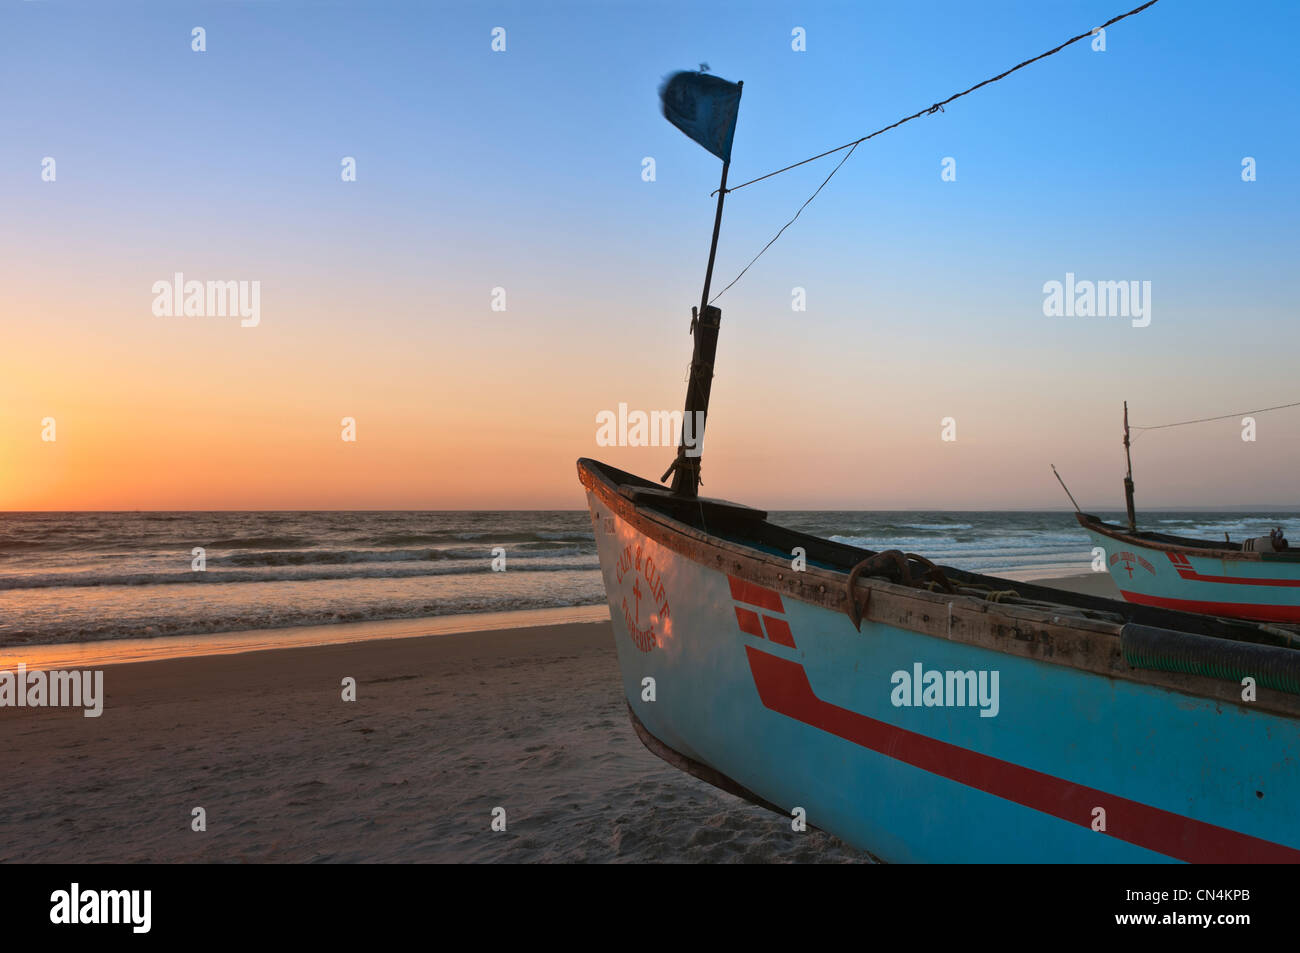 Boats on Colva Beach Goa India - Stock Image